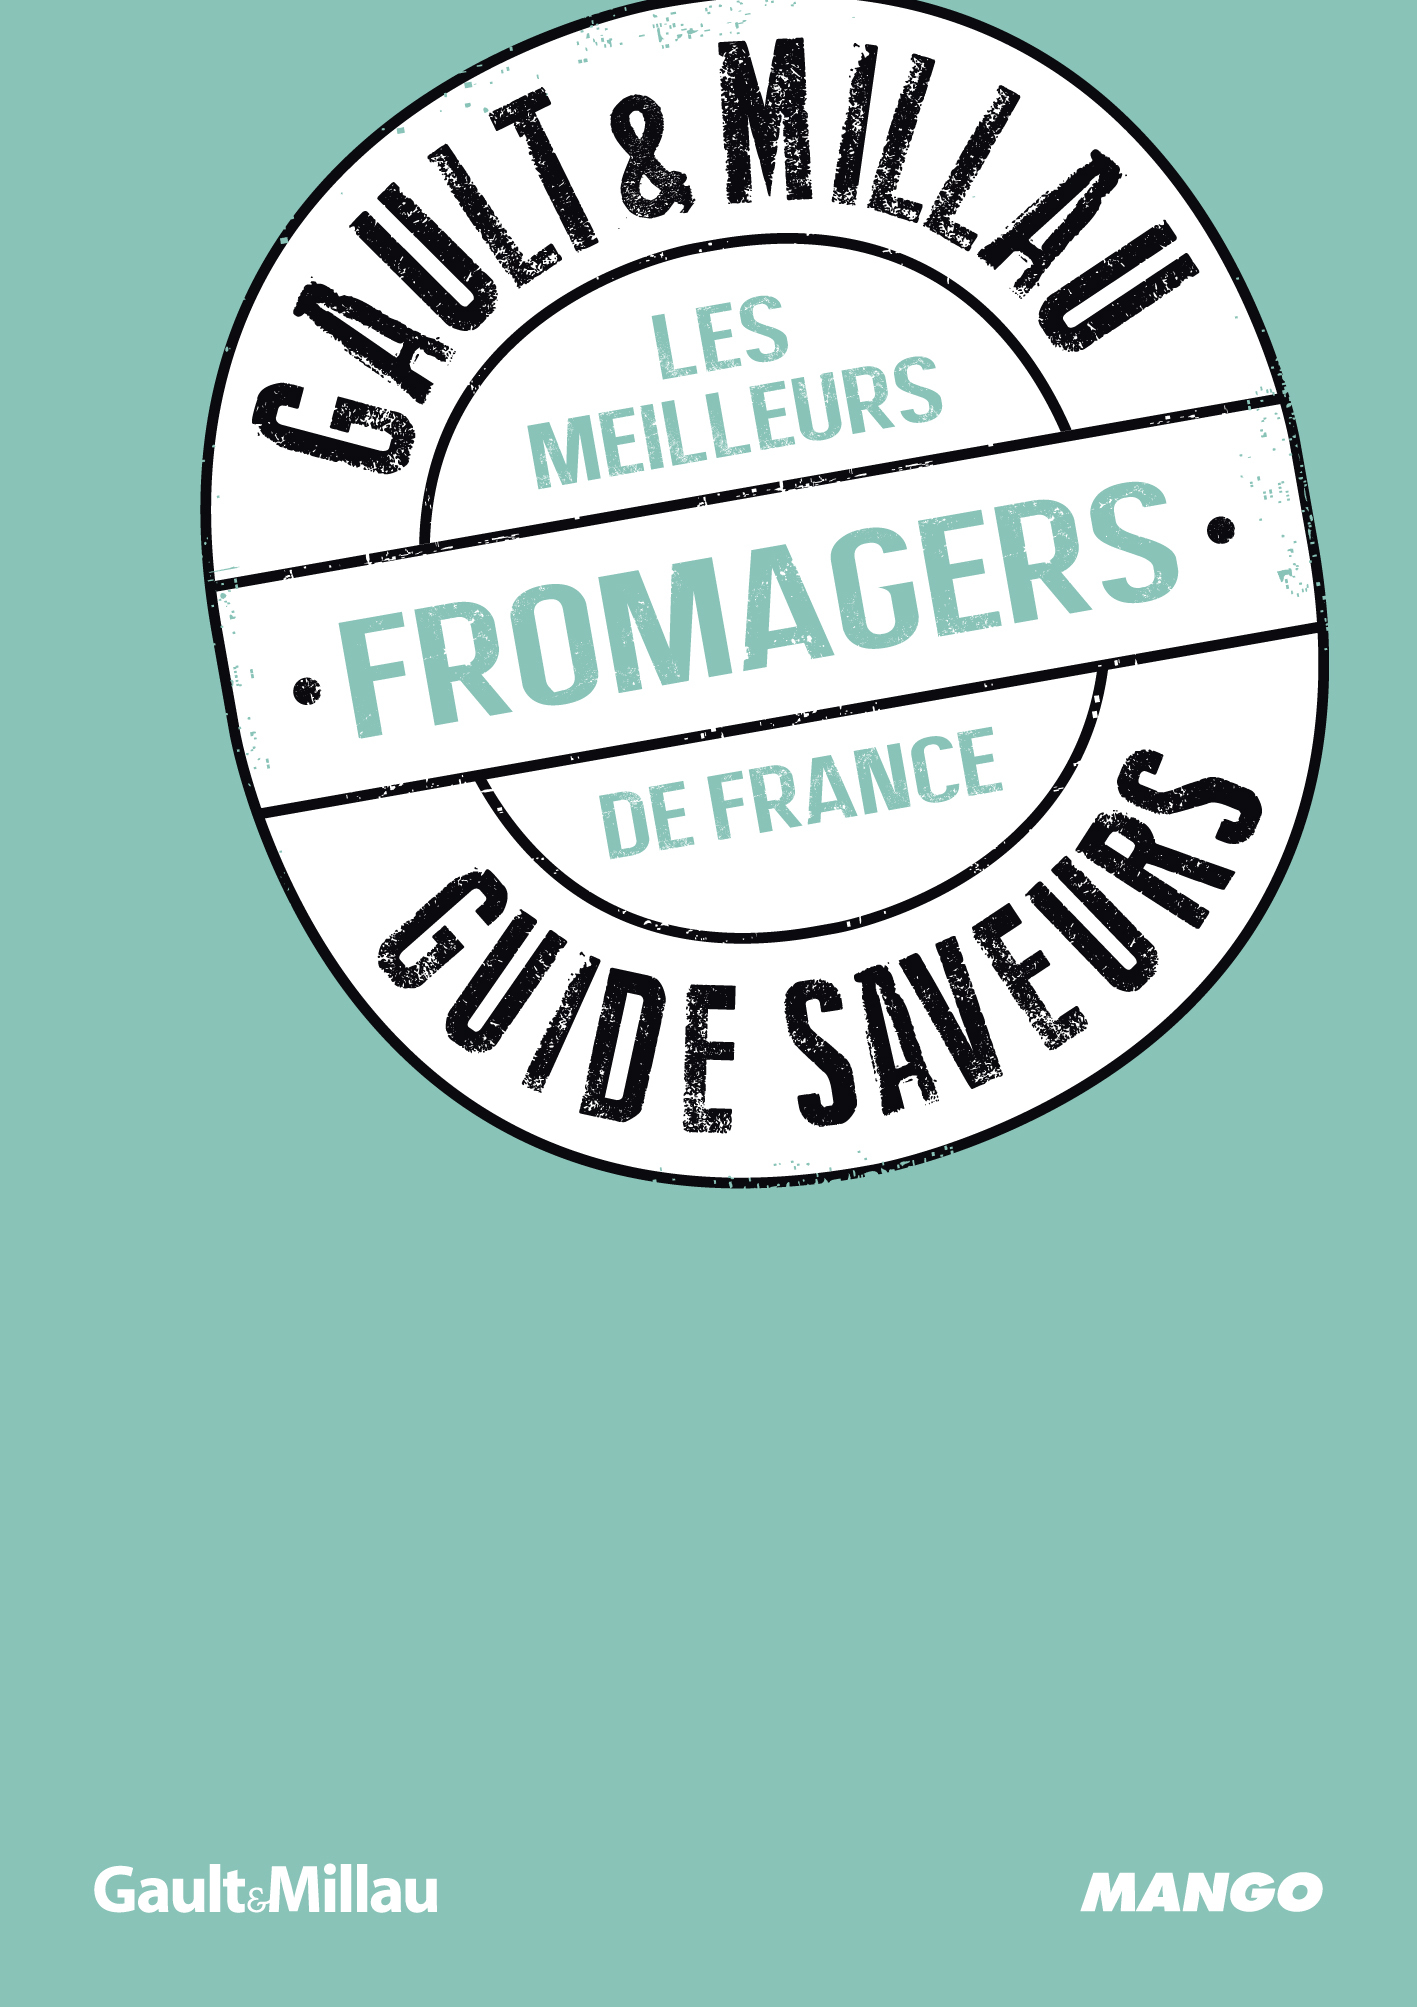 LES MEILLEURS FROMAGERS